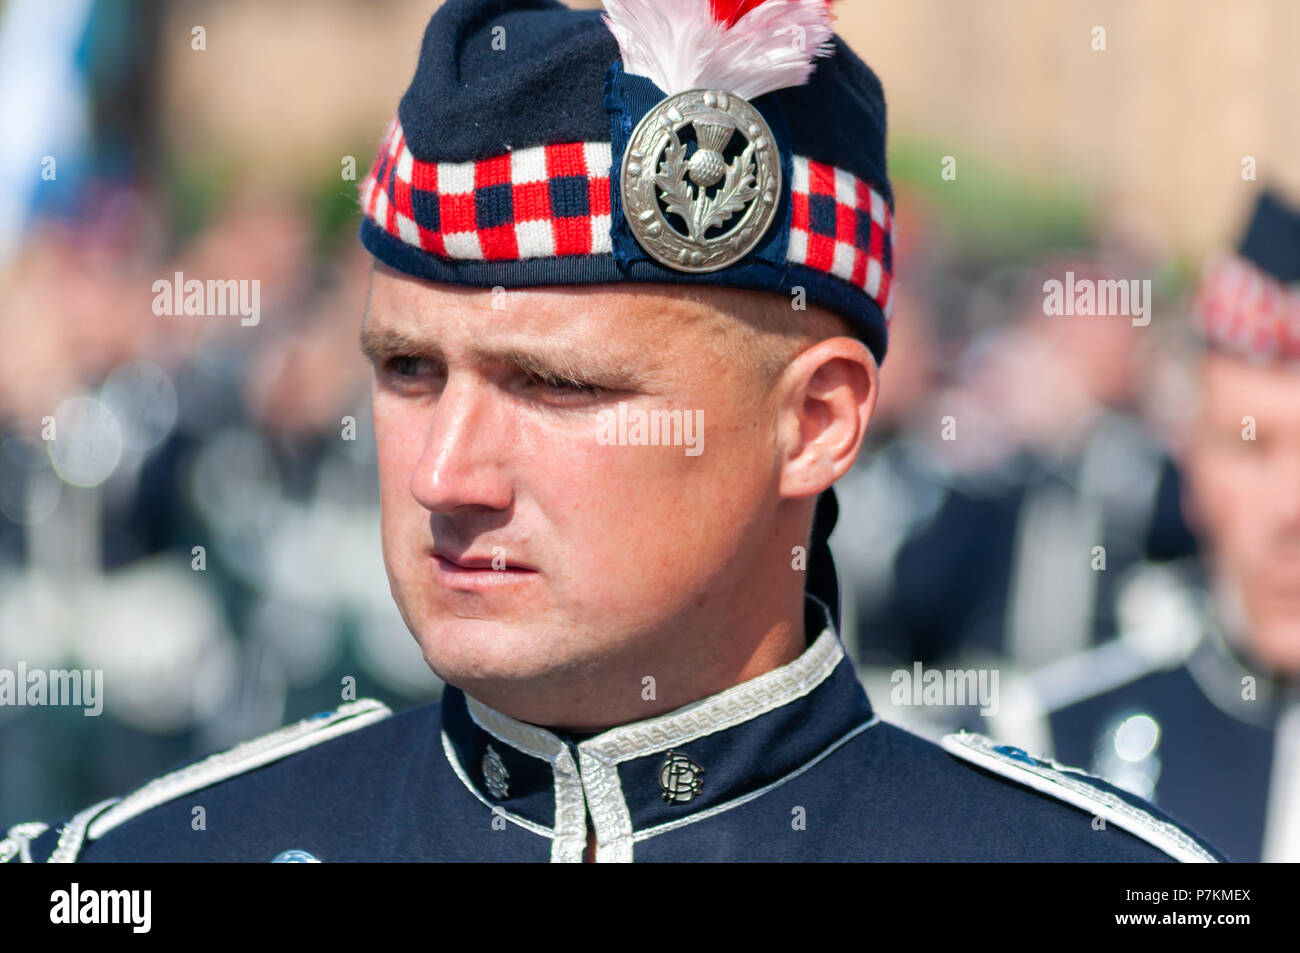 Glasgow, Scotland, UK. 7th July, 2018. A male band member wearing a uniform taking part in the annual Orange Walk through the streets of the city to mark the victory of Prince William of Orange over King James II at the Battle of the Boyne in 1690. Credit: Skully/Alamy Live News Stock Photo